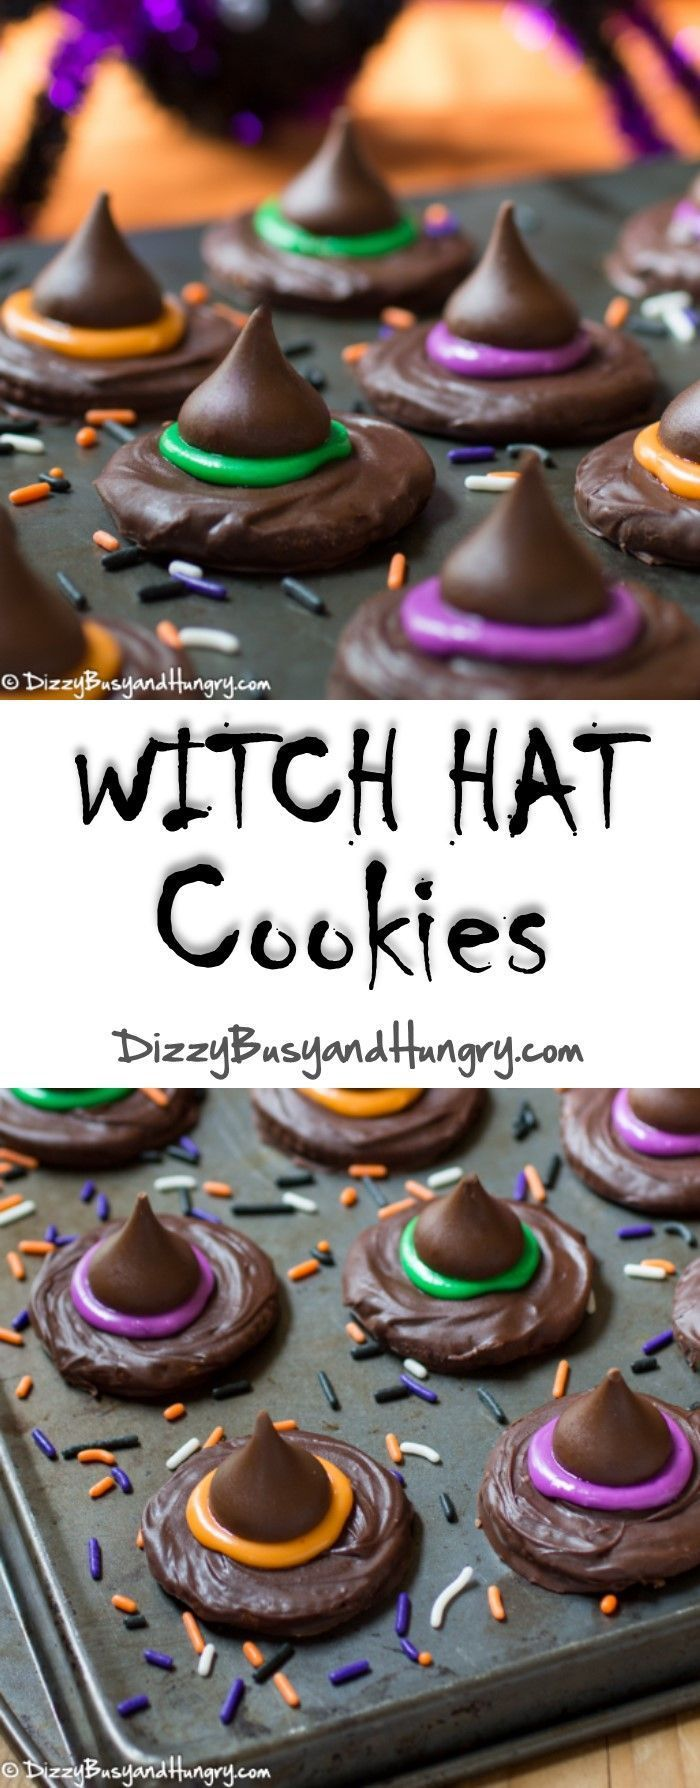 Witch Hat Cookies #SundaySupper   http://DizzyBusyandHungry.com - These no-bake Halloween witch hat treats are so easy and fun to make and to eat!